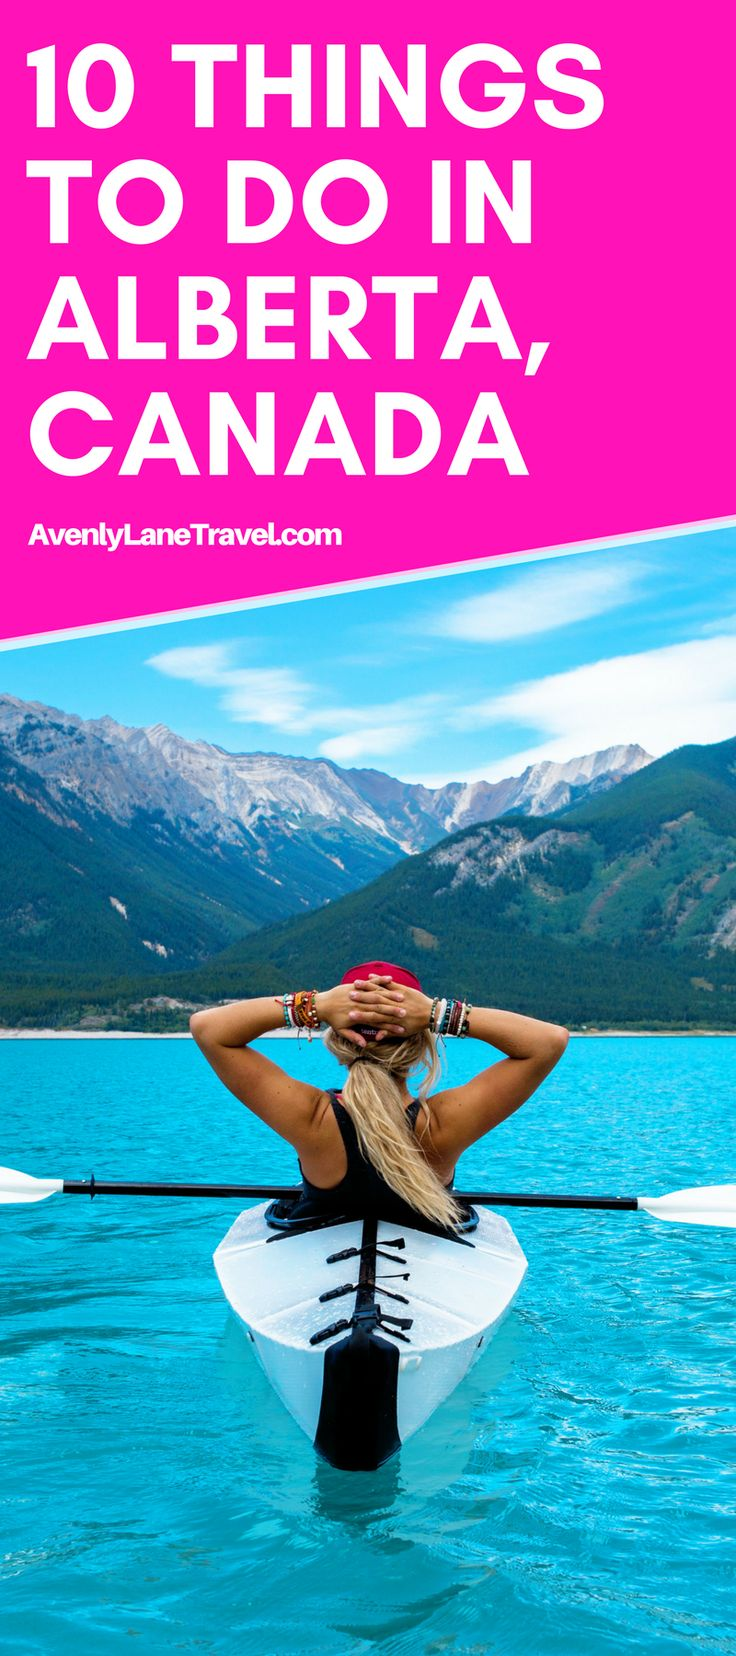 Top 10 Amazing Things To See And Do In Alberta, Canada! Including the Columbia Icefields | Banff National Park | Johnston Canyon Hike | Lake Abraham | Lake Louise | Peyto Lake and so much more! See more on AvenlyLaneTravel.com #banffsummerphotos